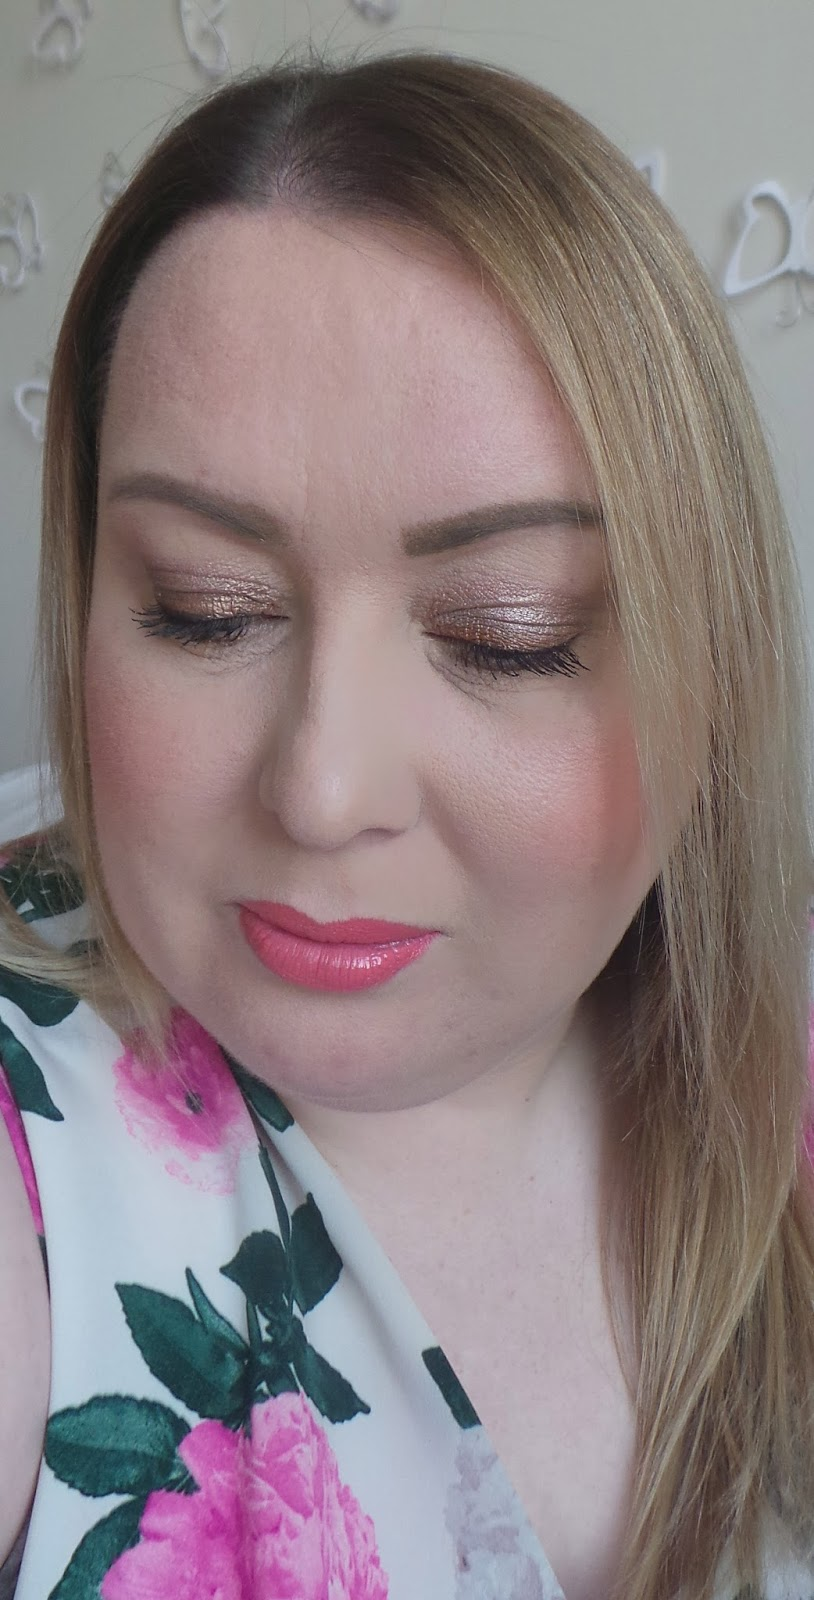 By Terry Terrybly Densillis blush in Platonic Blonde review